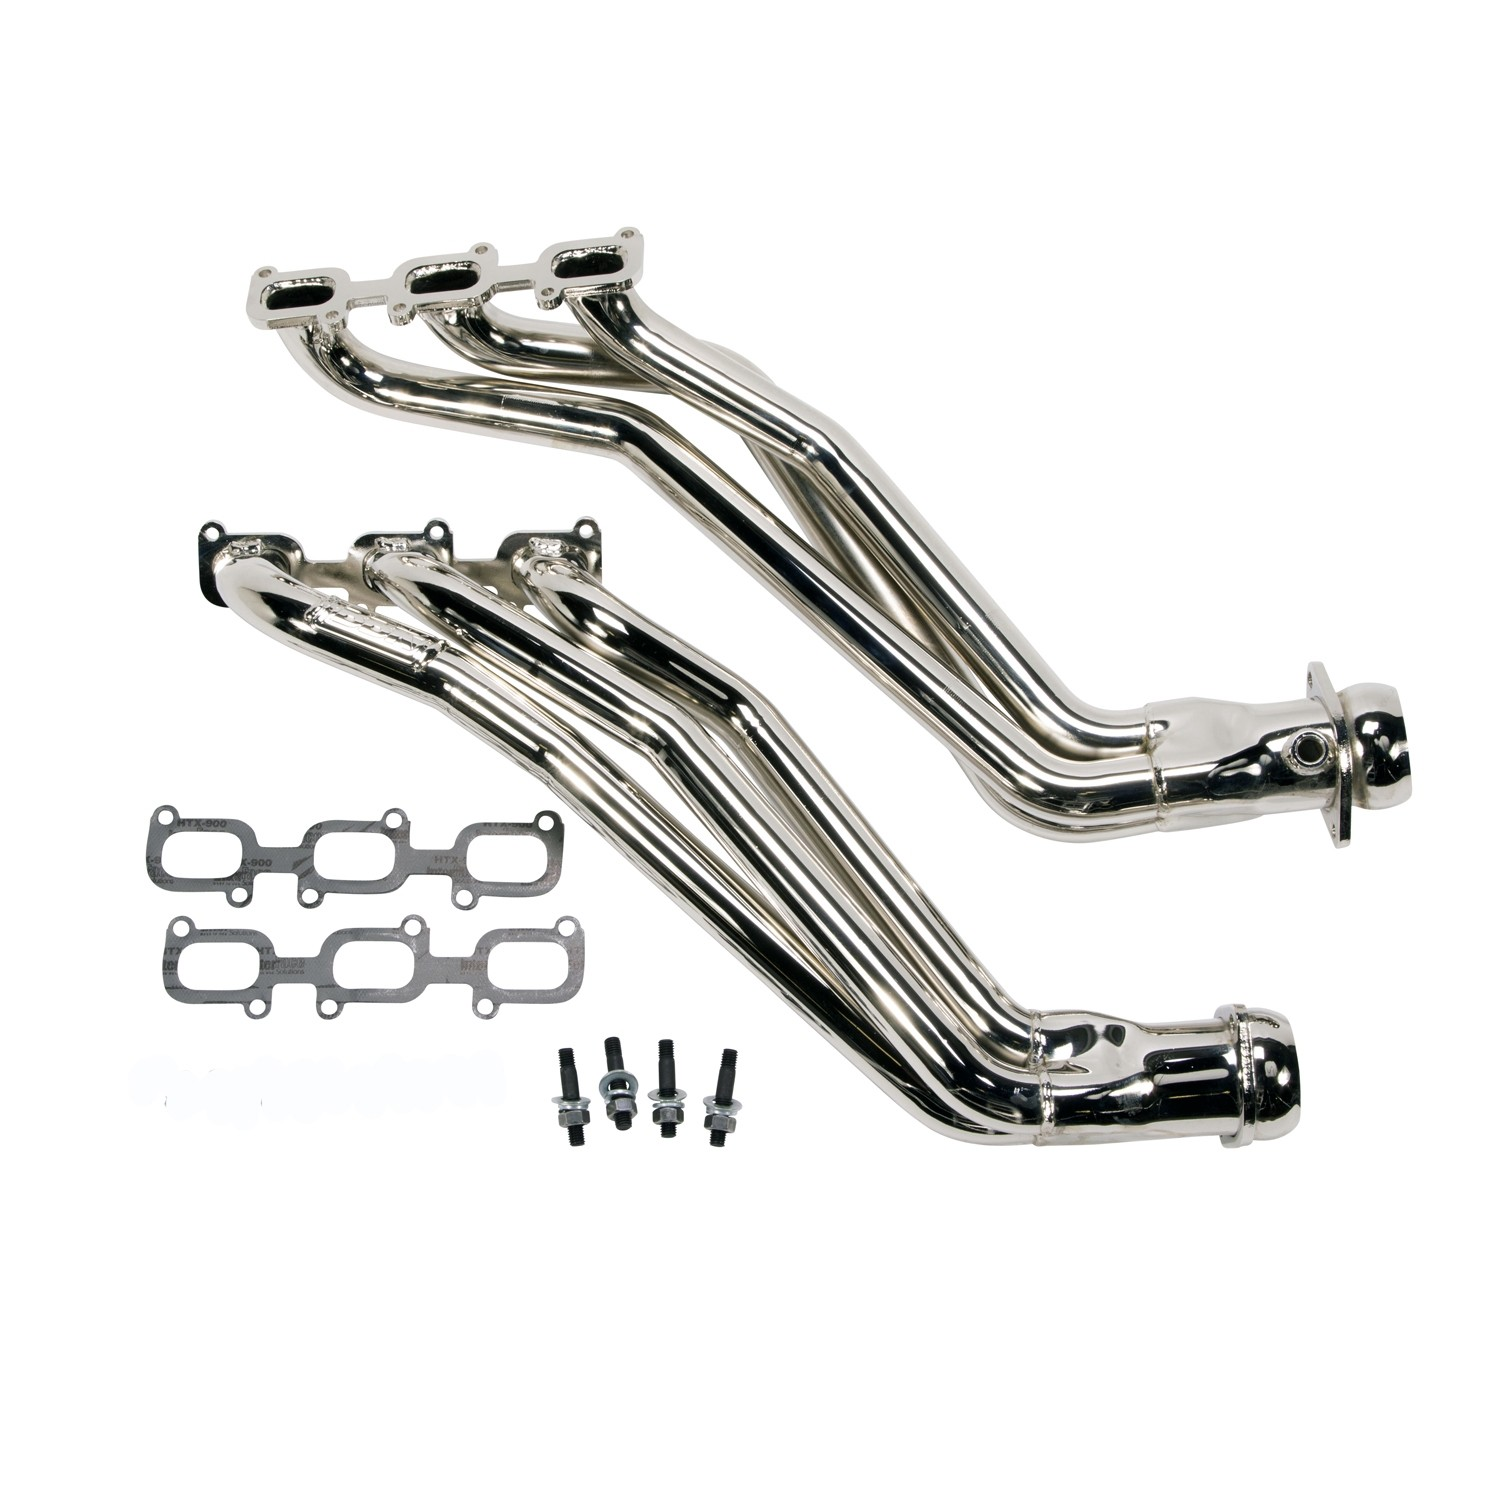 Bbk 1 3 4 Full Length Chrome Headers 11 17 Mustang V6